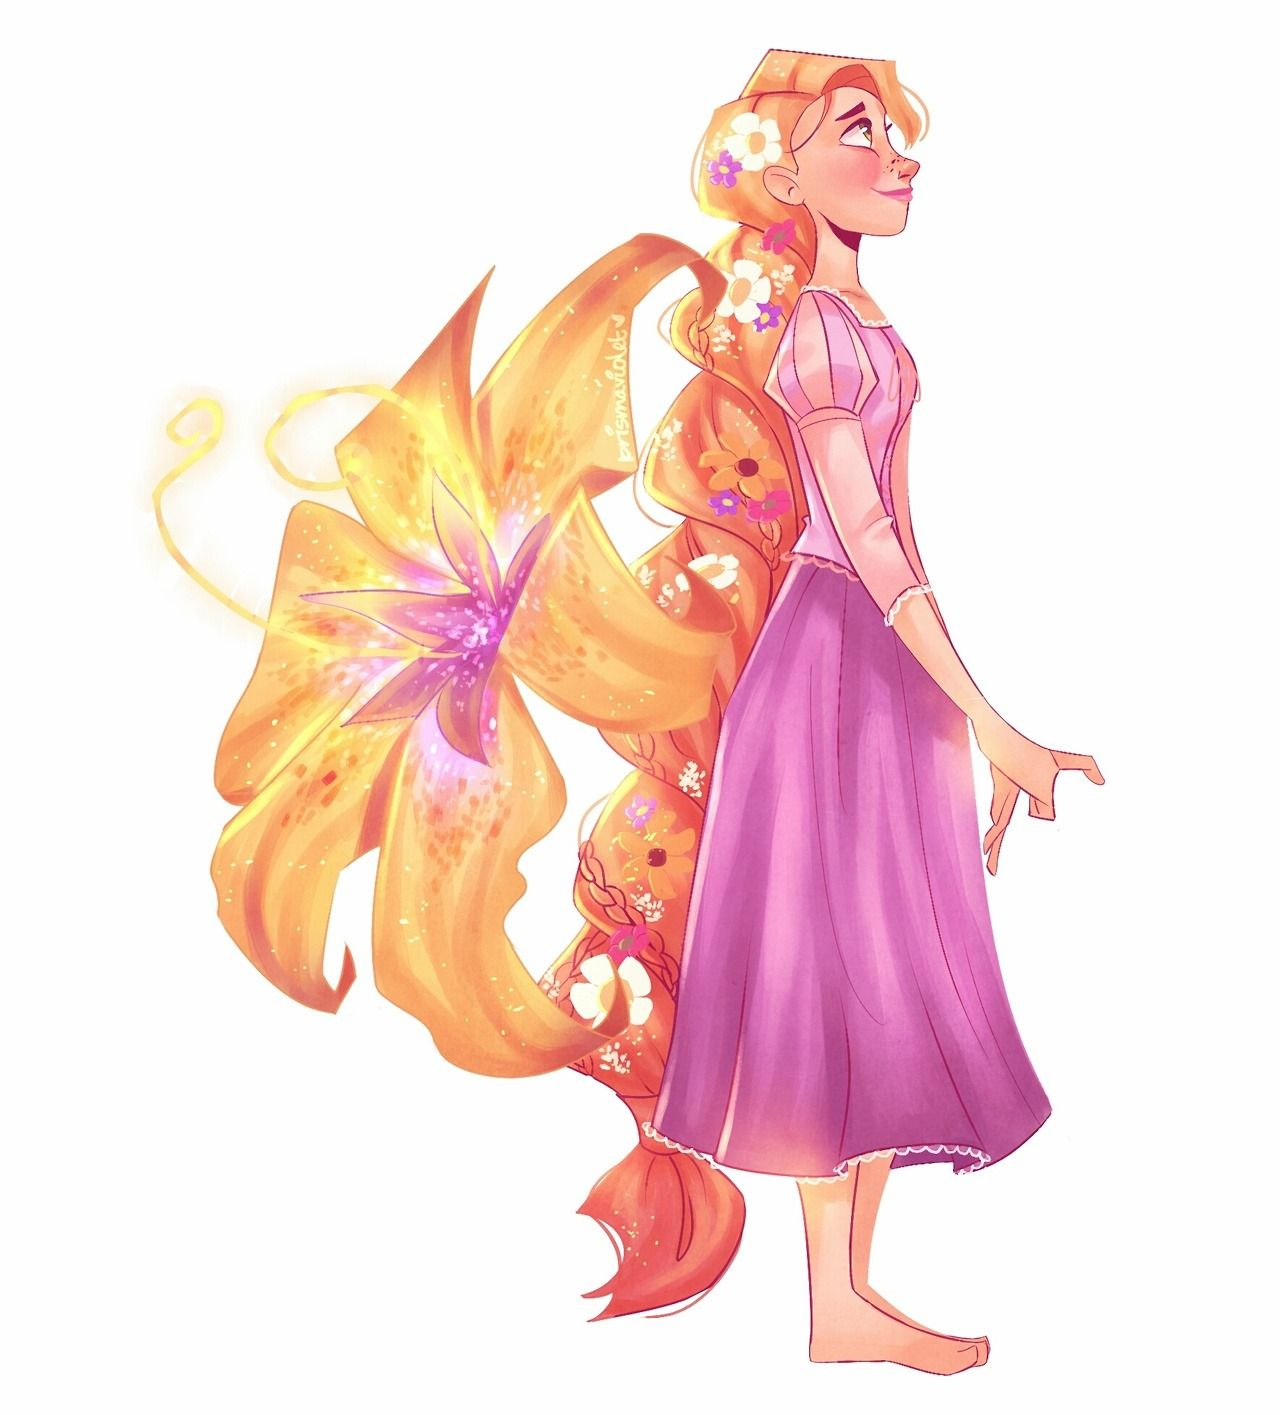 ☀ it's been seven years since the sunshine princess left her tower. happy anniversary, tangled ☀